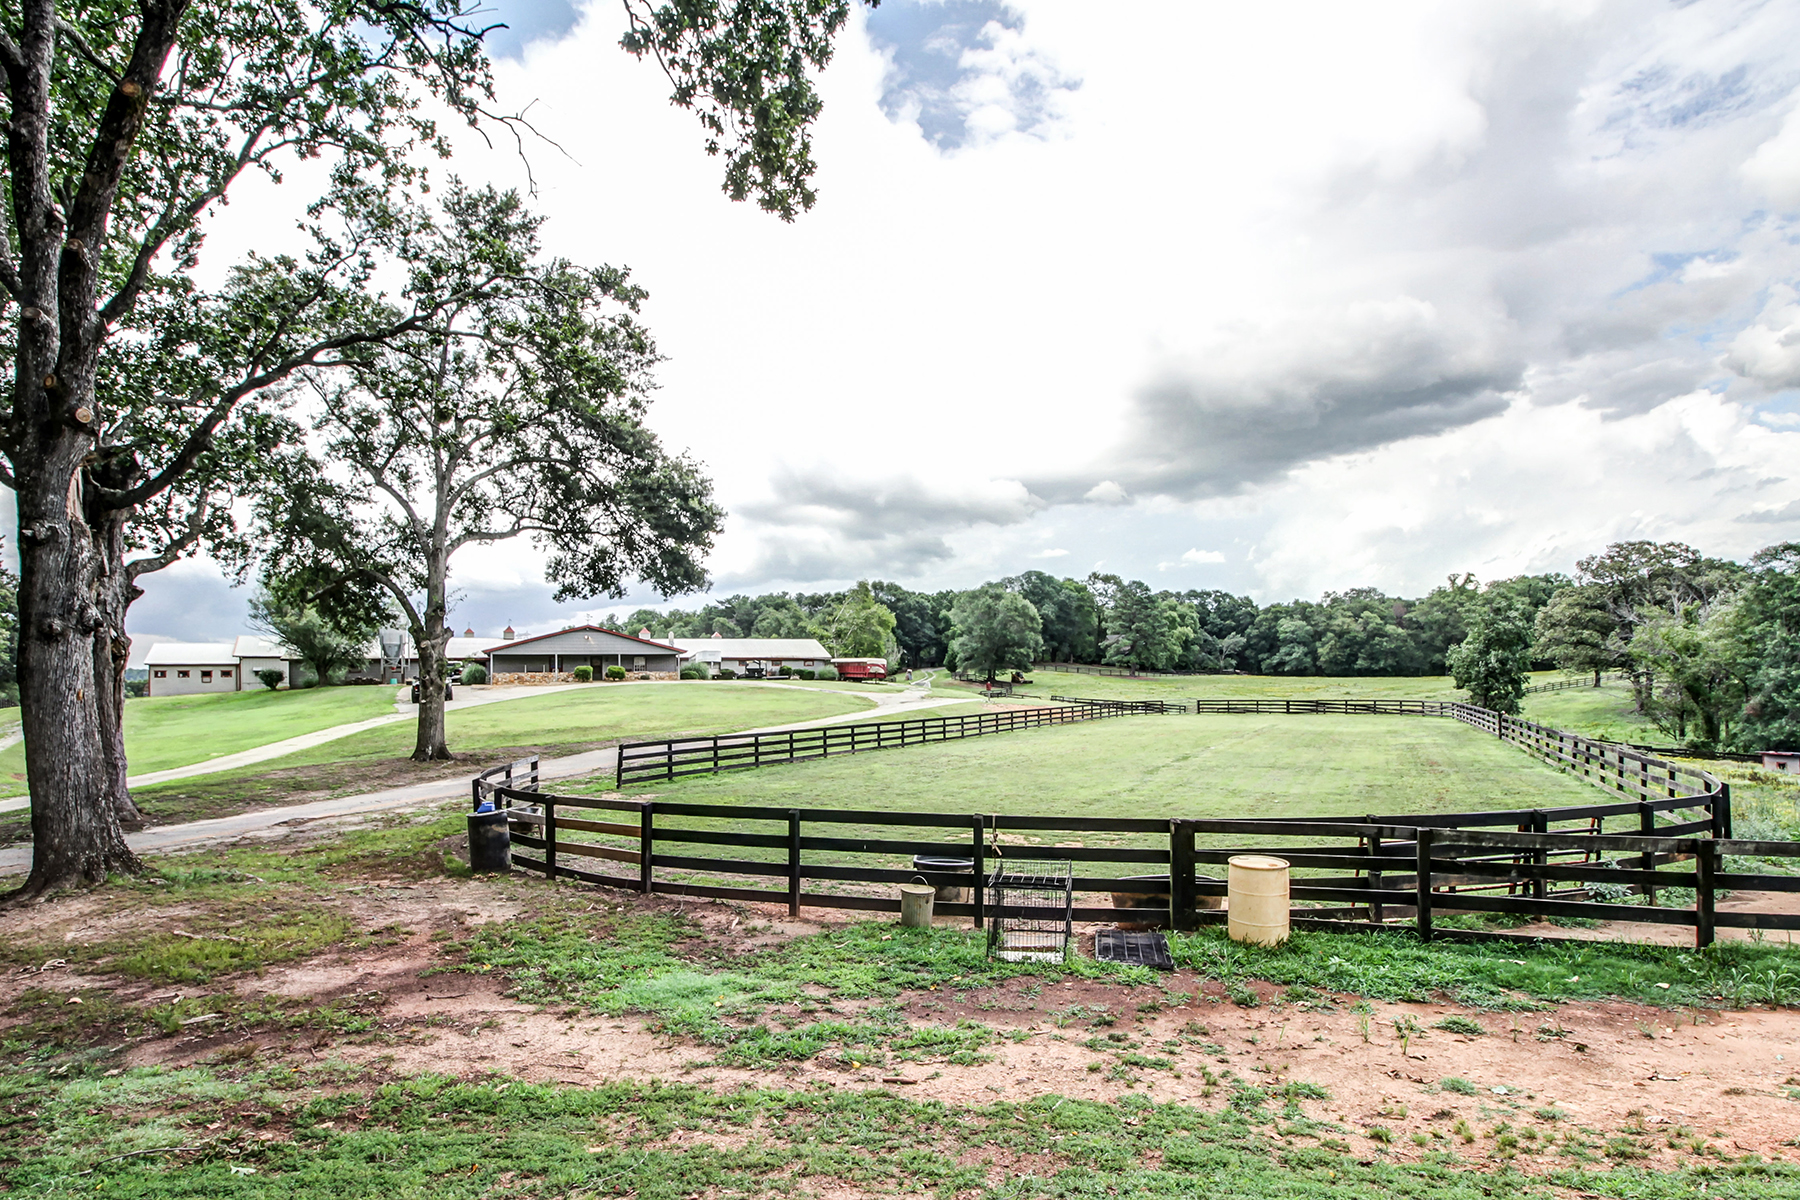 Maison unifamiliale pour l Vente à UNIQUE EQUESTRIAN ESTATE 151 Lake Hill Farm Rd Mooresboro, Carolina Du Nord, 28114 États-Unis